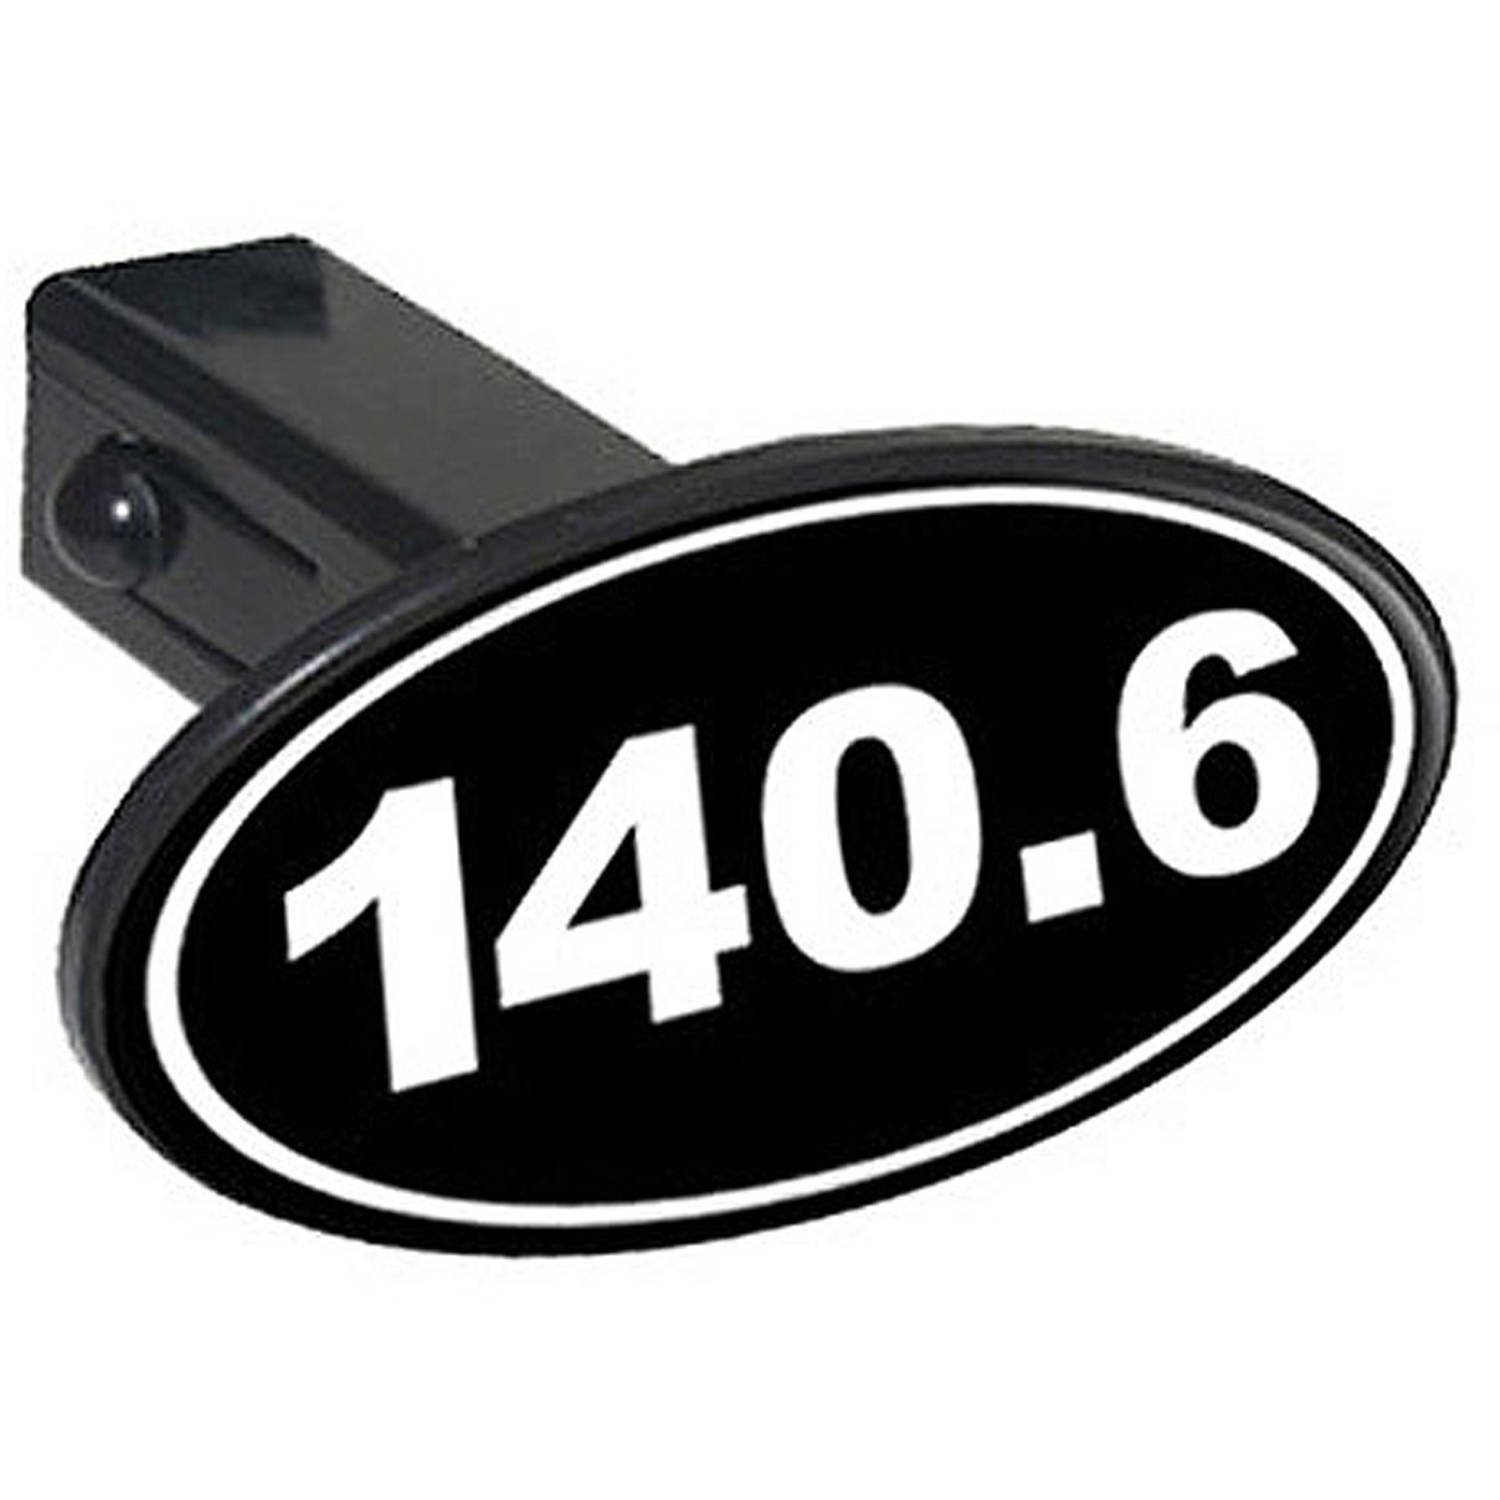 """140.6 Iron Man Euro Oval White On Black 1.25"""" Oval Tow Trailer Hitch Cover Plug Insert by Graphics and More"""